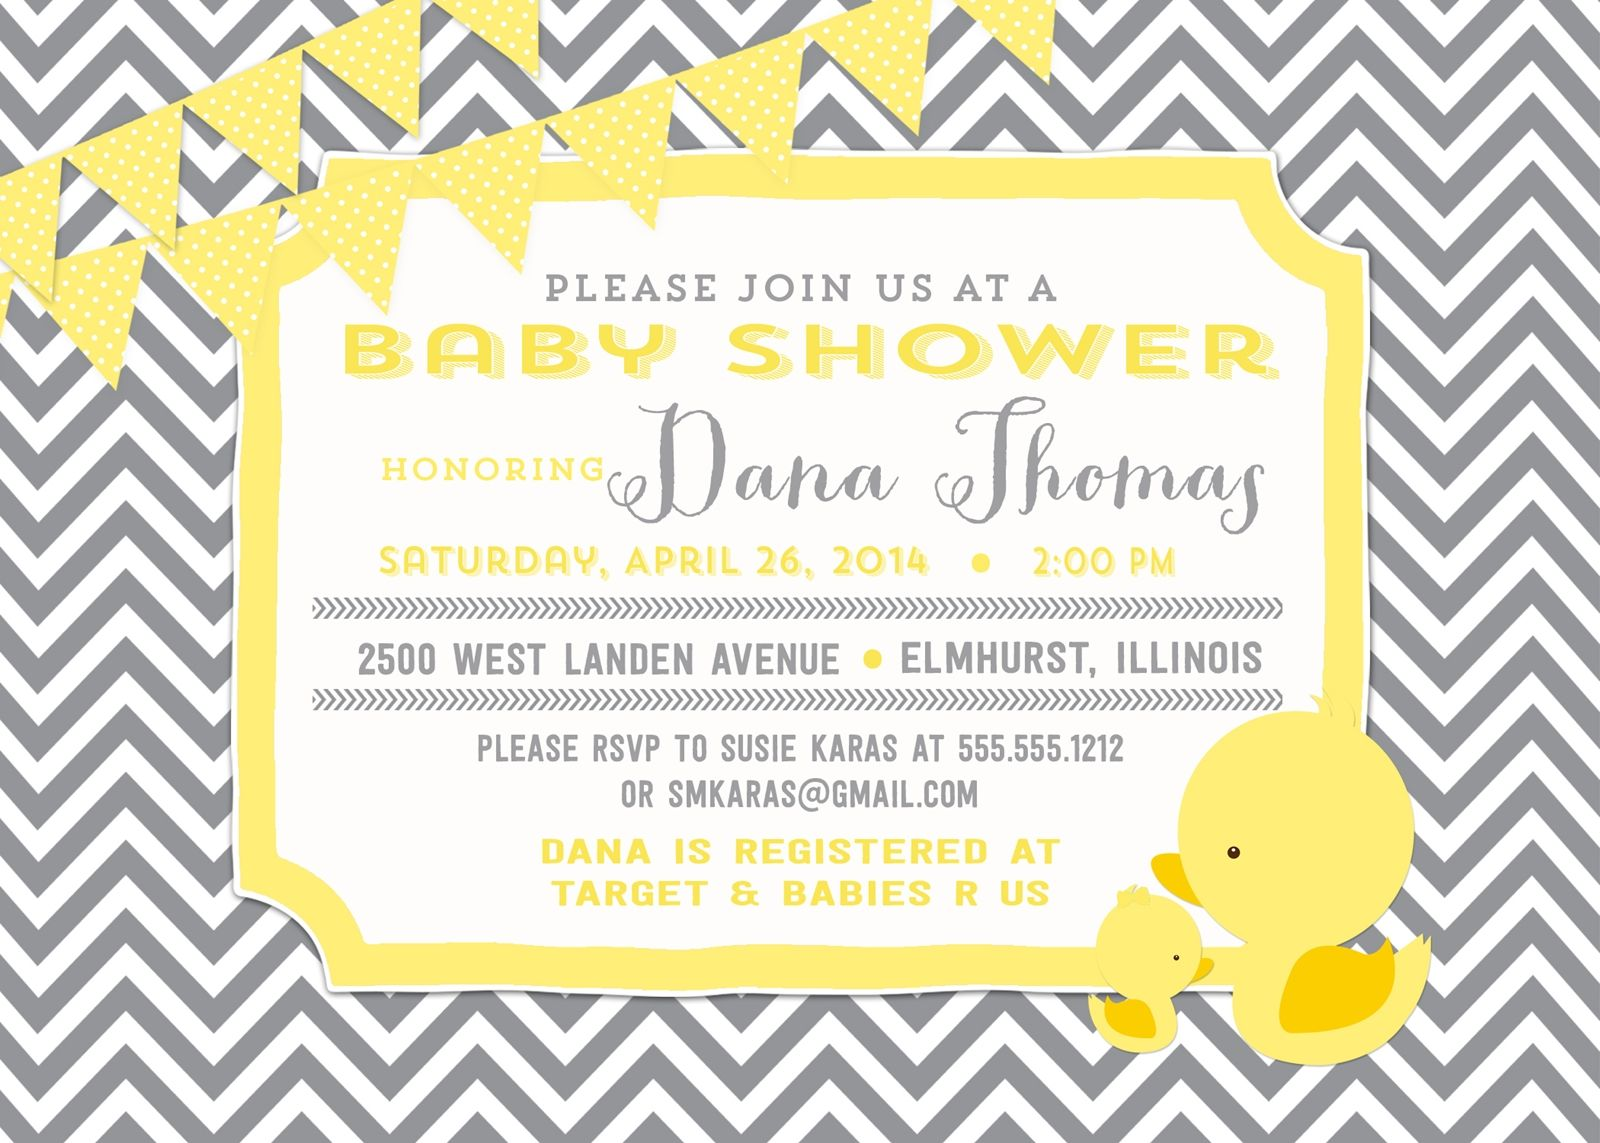 Rubber Duckie Baby Shower Invitation and personalized sign, Gray ...